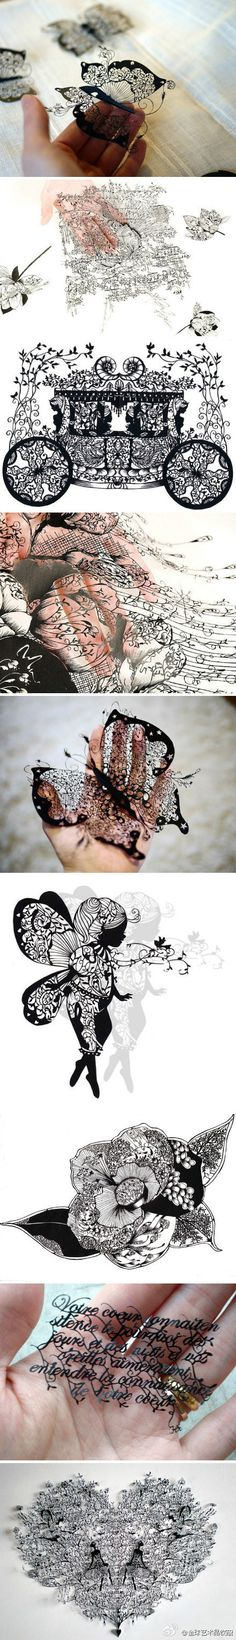 paper-cut art of China!